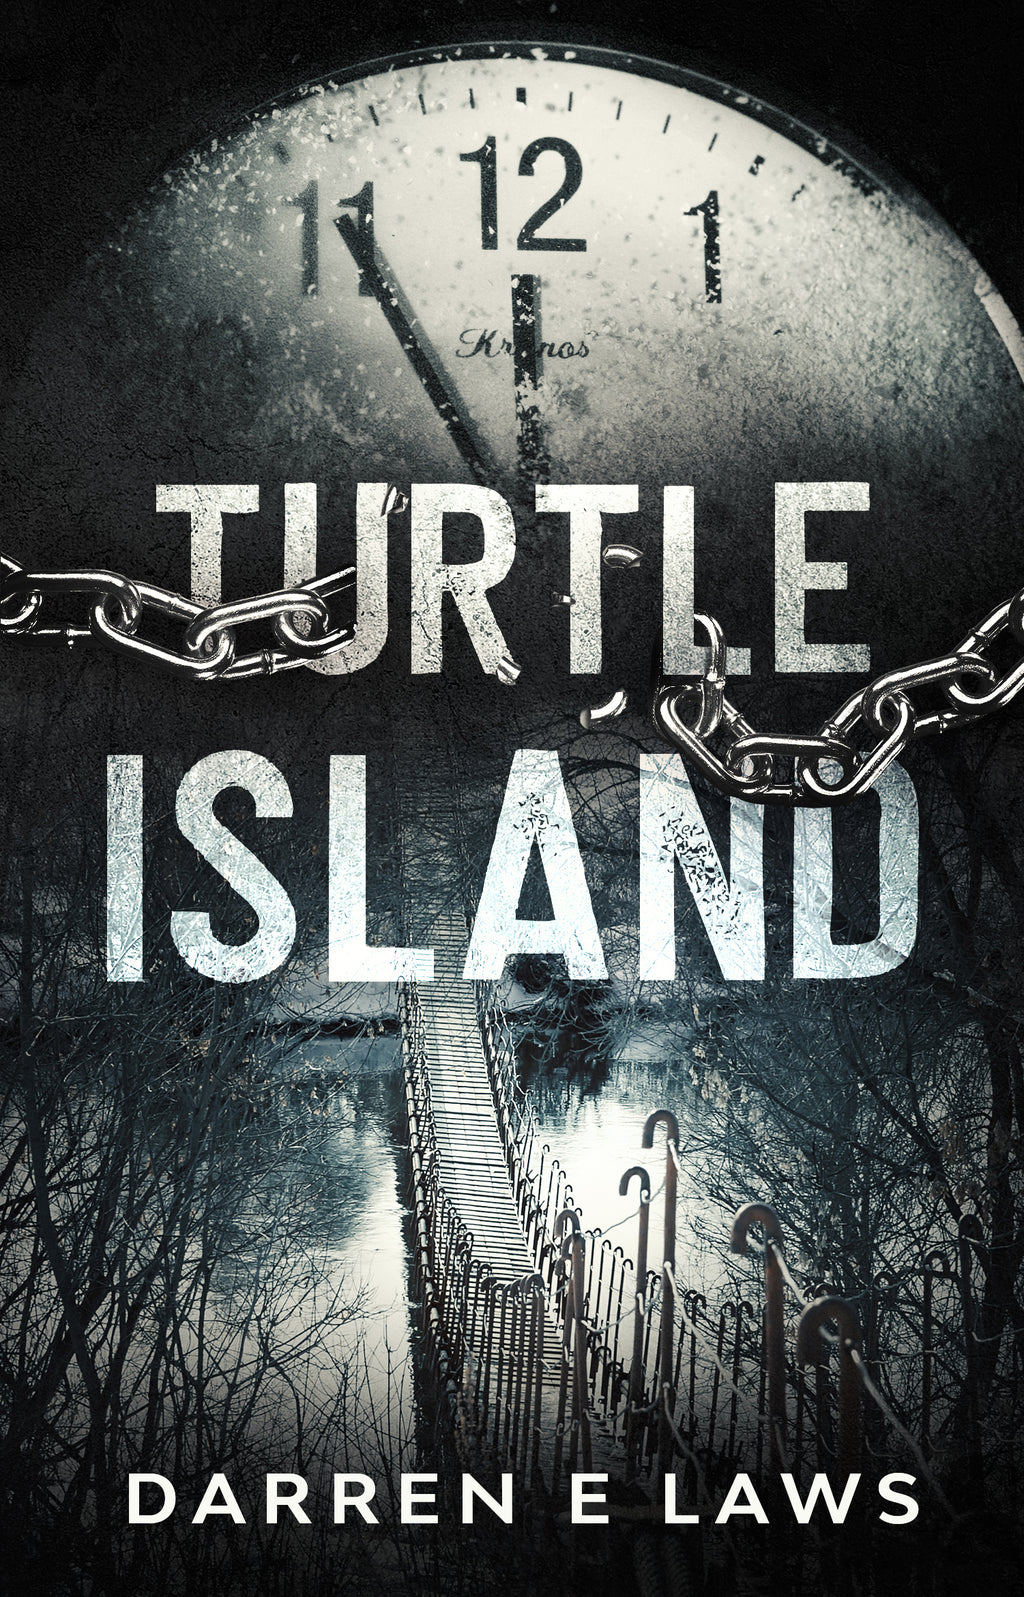 PreOrder - Turtle Island - 20th Anniversary edition - Crime horror from Darren E Laws - Caffeine Nights Books